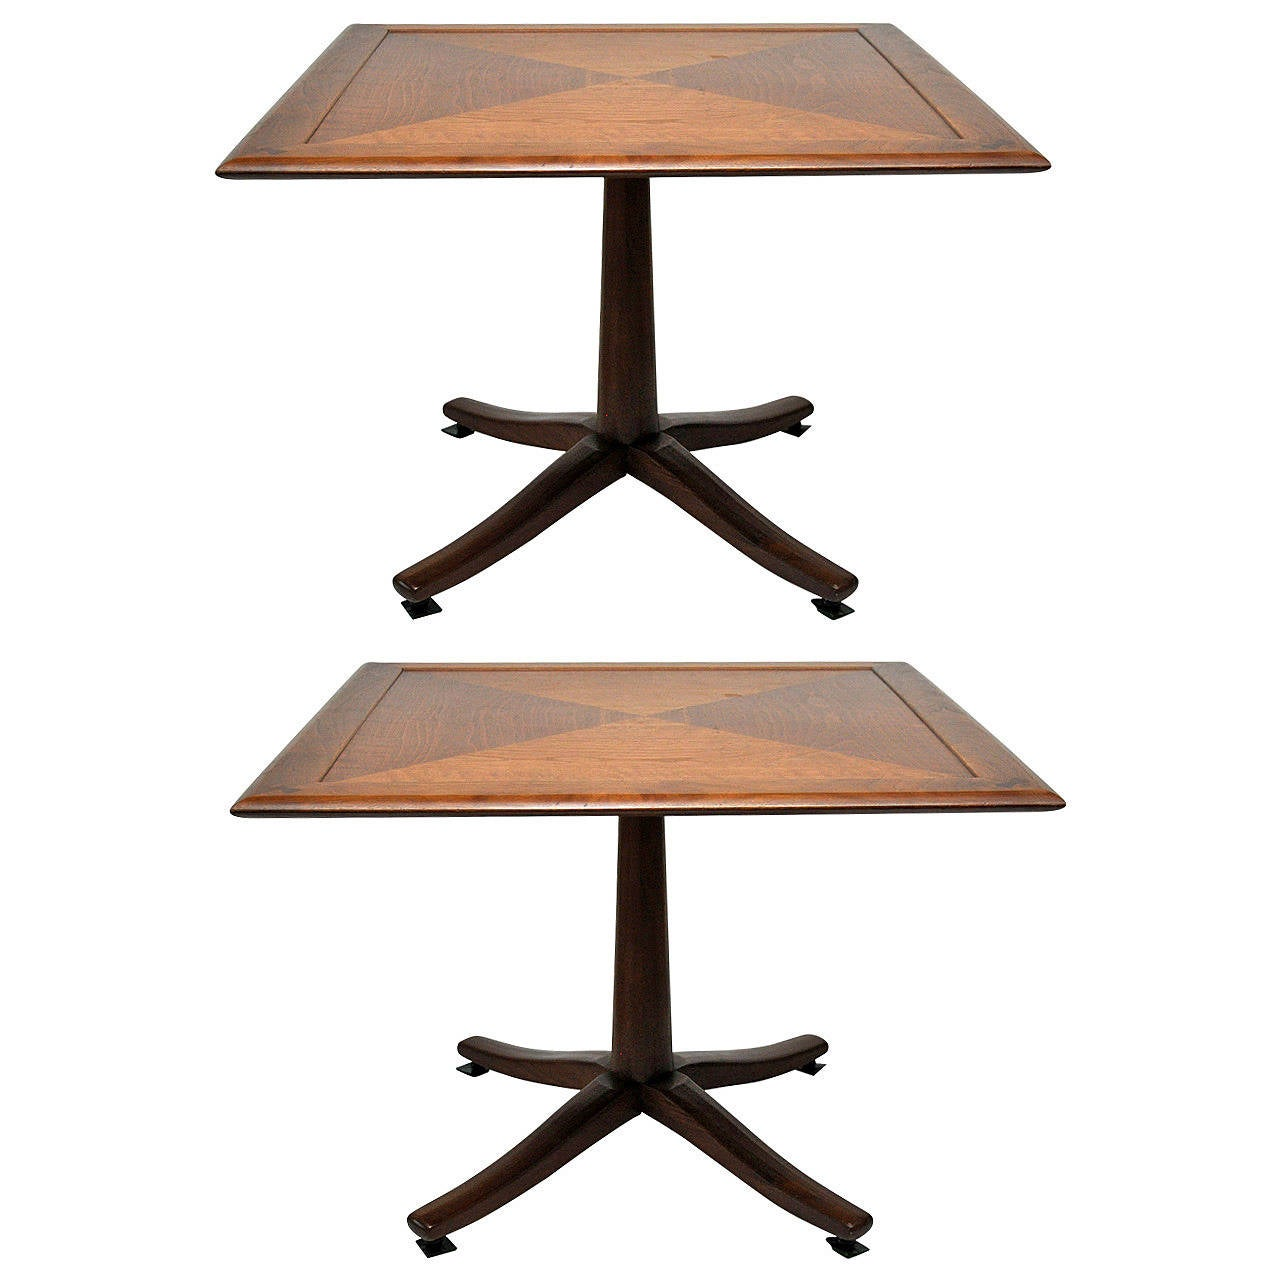 Pair of Midcentury Occasional Tables by Drexel Heritage Furniture